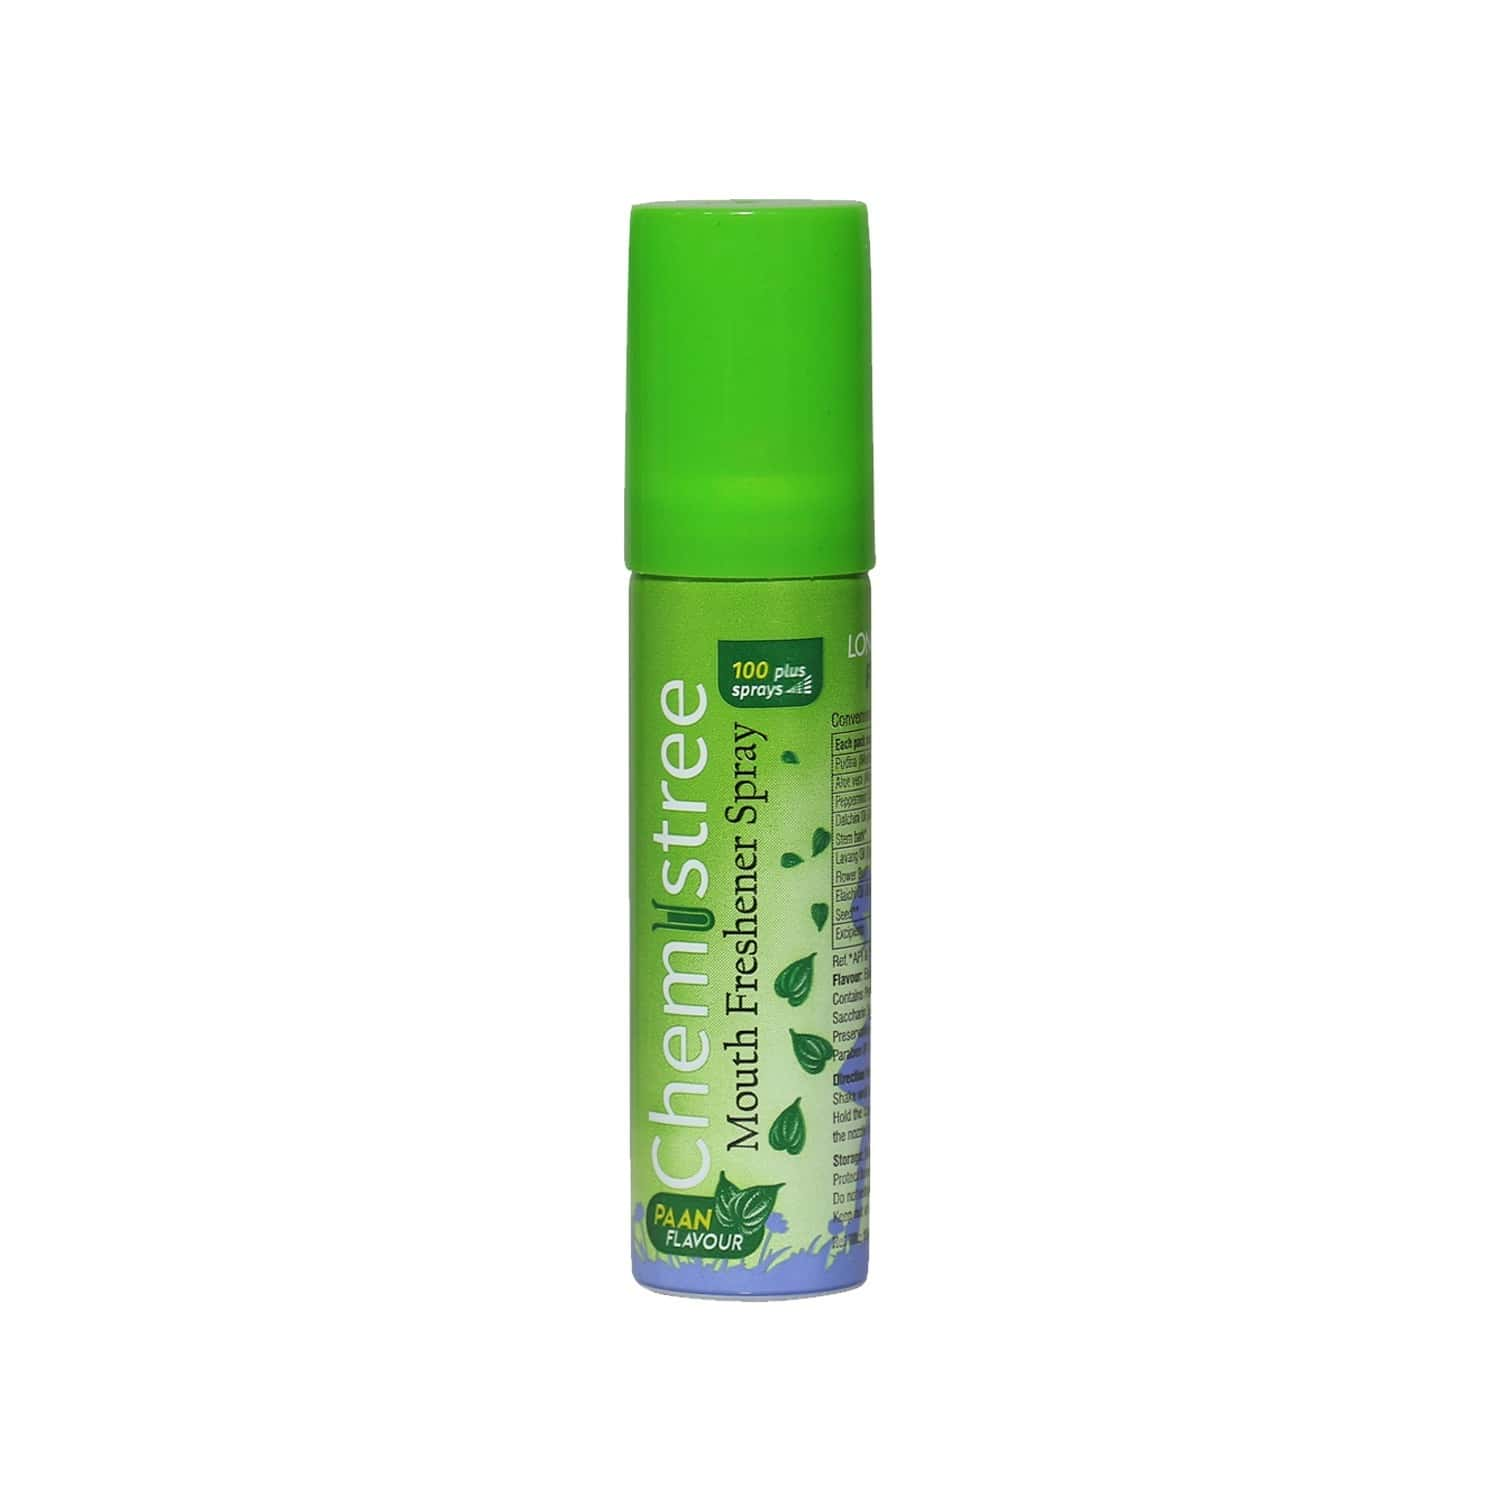 Chemistree Long Lasting Paan Mouth Freshener - 15g